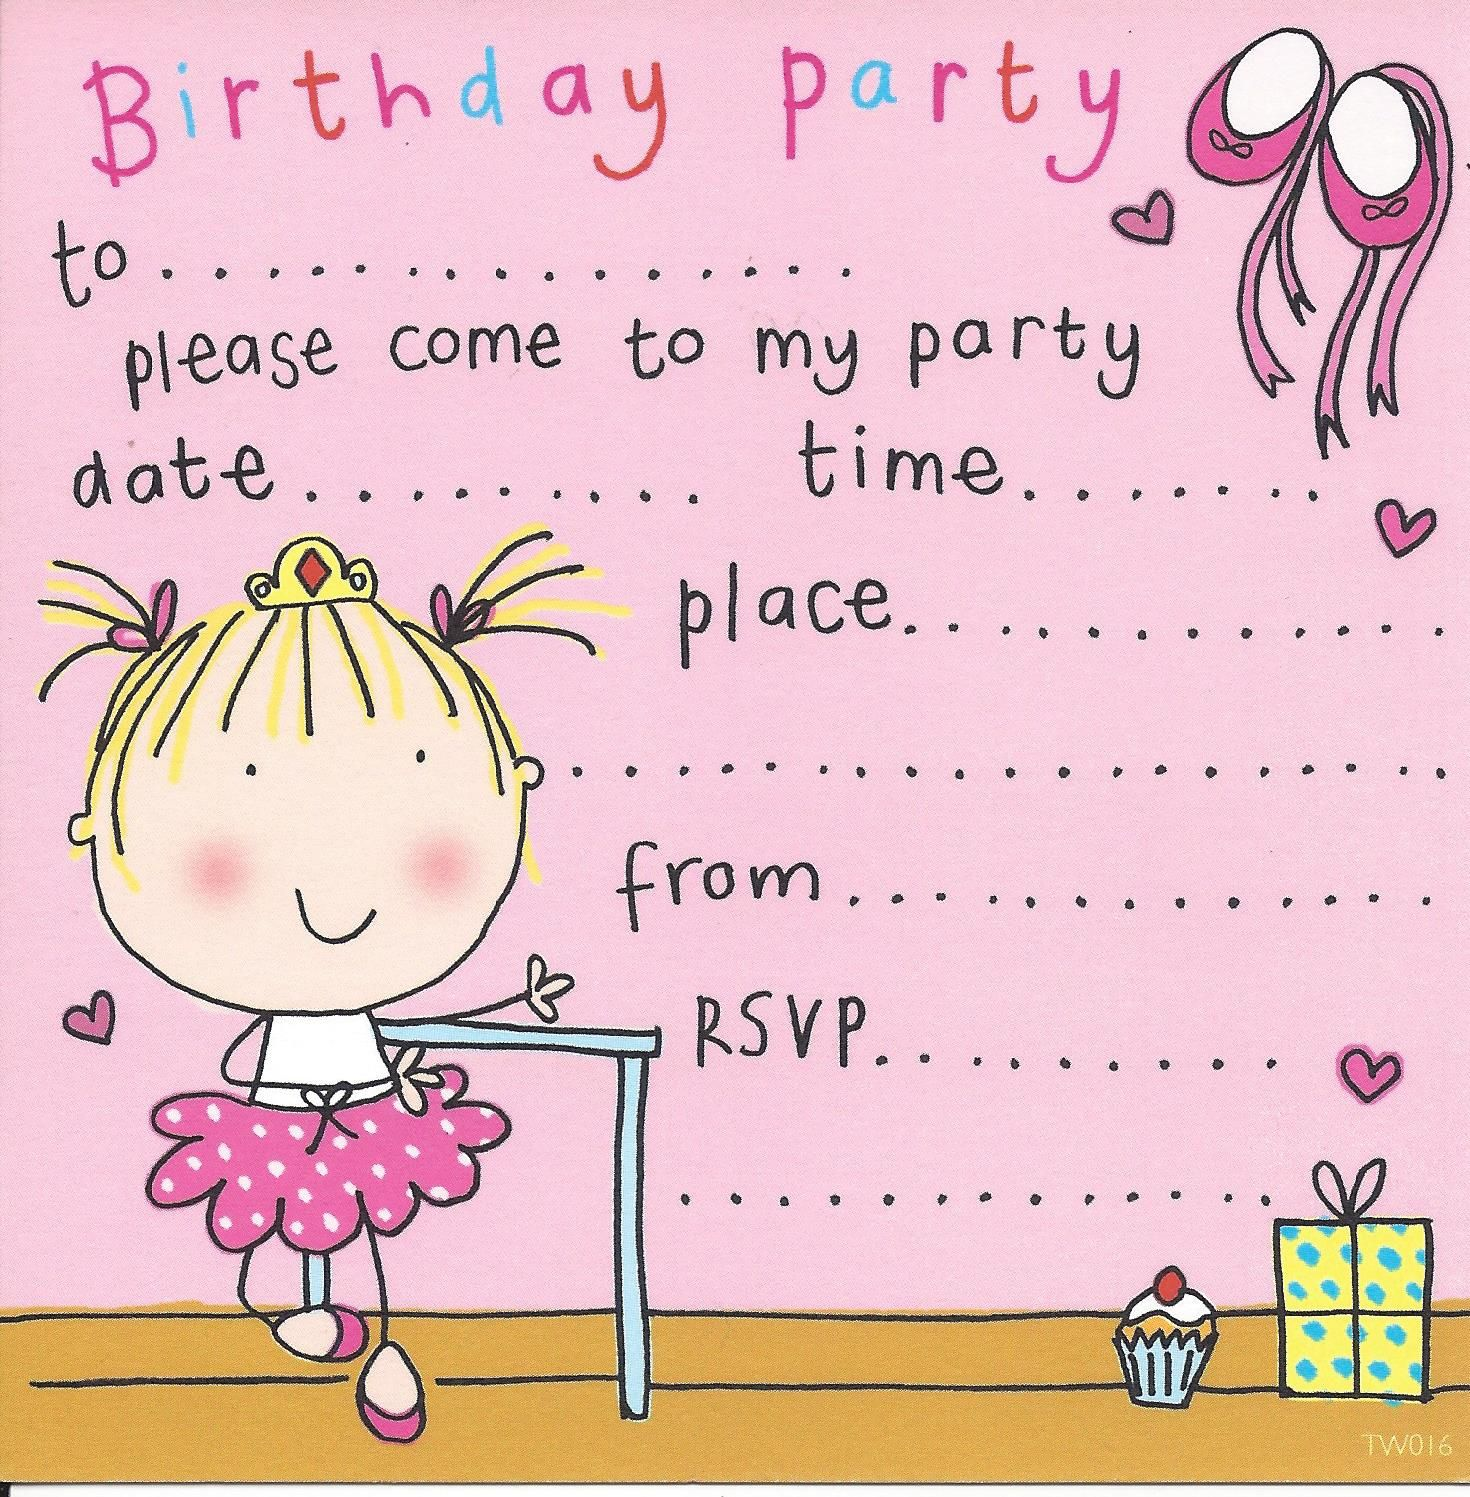 Birthday party invitations kids roho4senses birthday party invitations kids stopboris Image collections